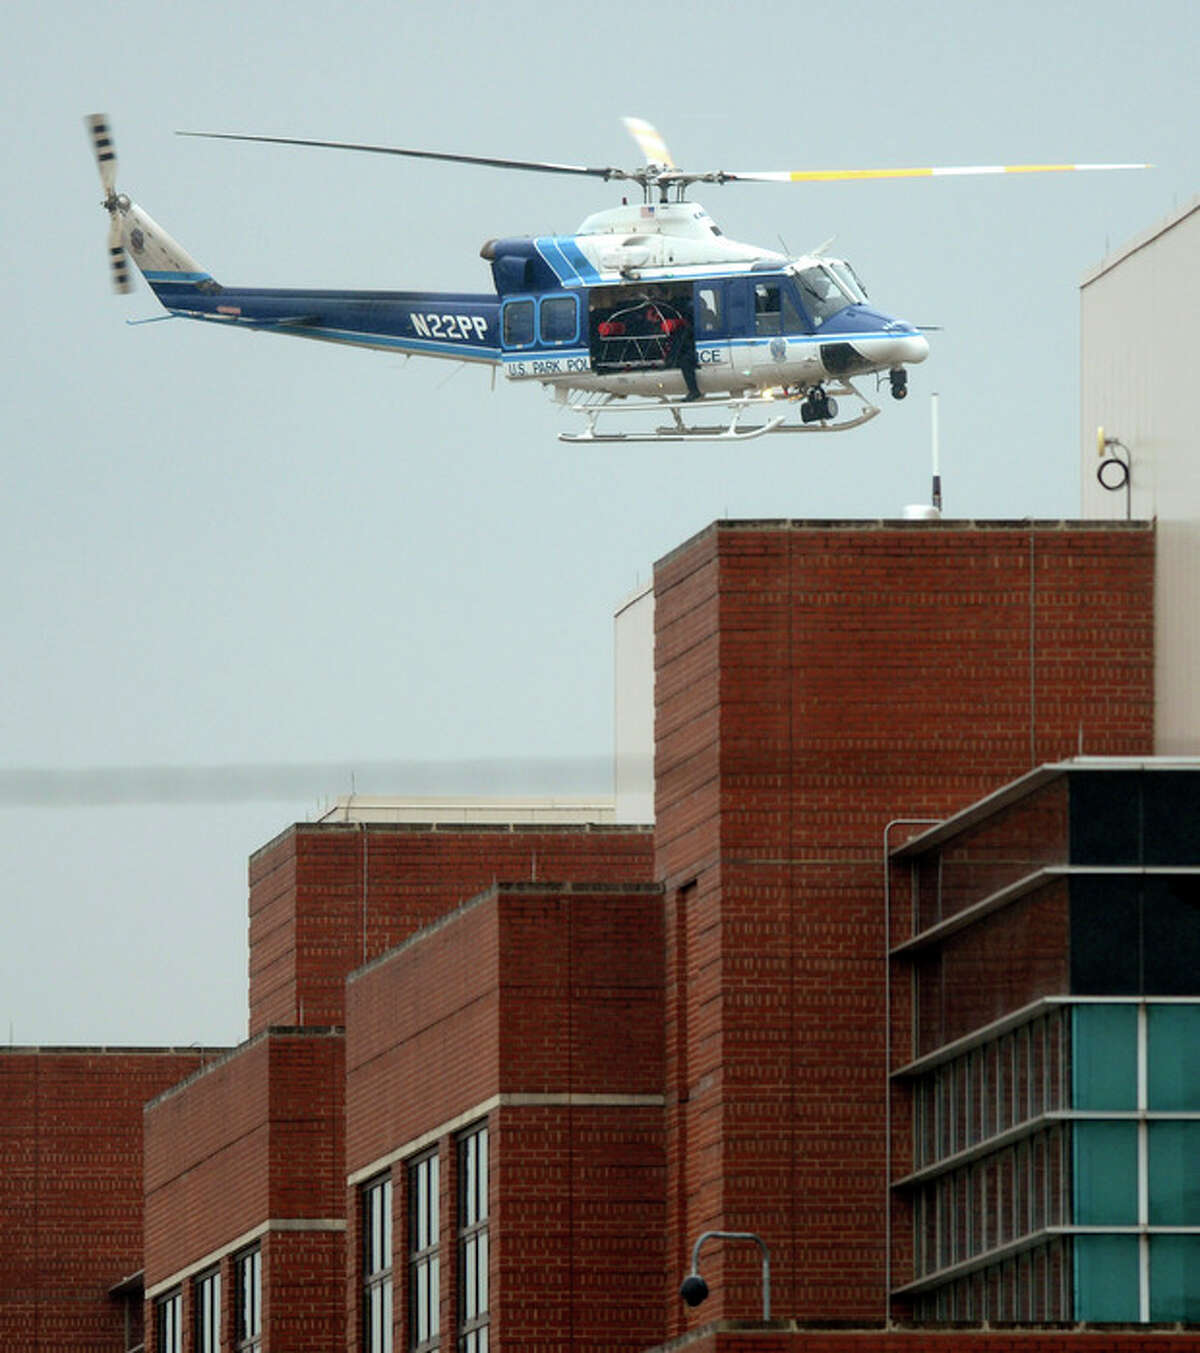 A U.S. Park Police helicopter flies over a building at the Washington Navy Yard in Washington, Monday, Sept. 16, 2013. At least one gunman opened fire inside a building at the Washington Navy Yard on Monday morning, (AP Photo/Susan Walsh)